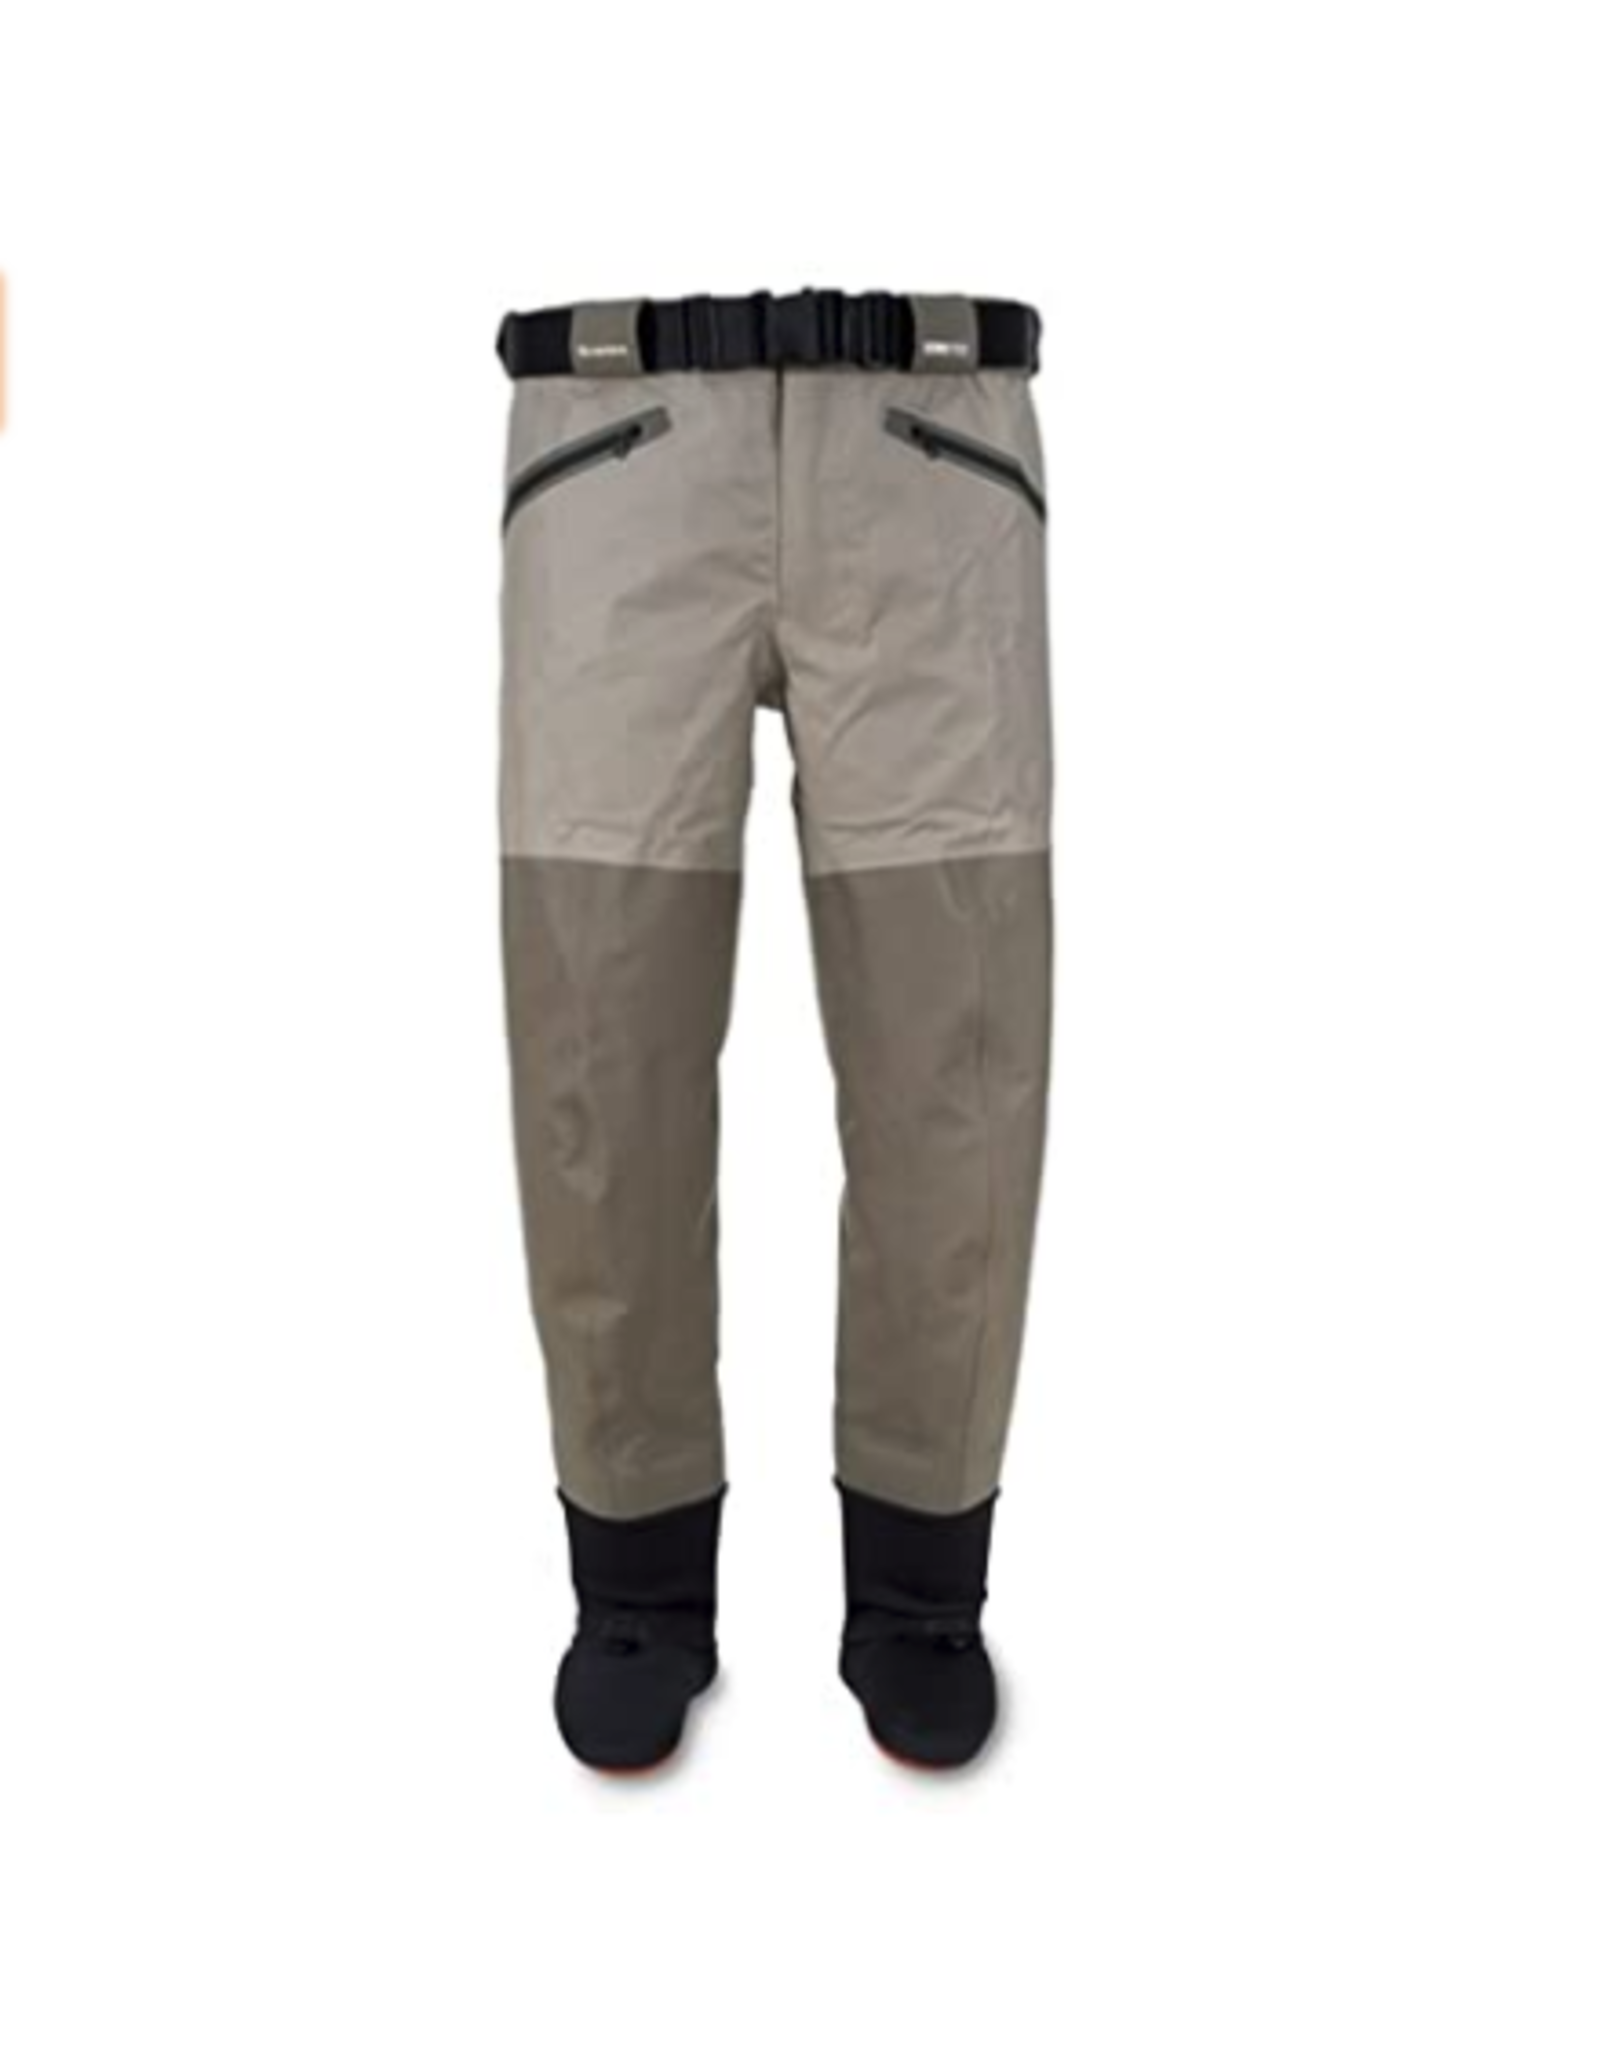 Simms Simms - Men's G3 Guide Pant (Discontinued)